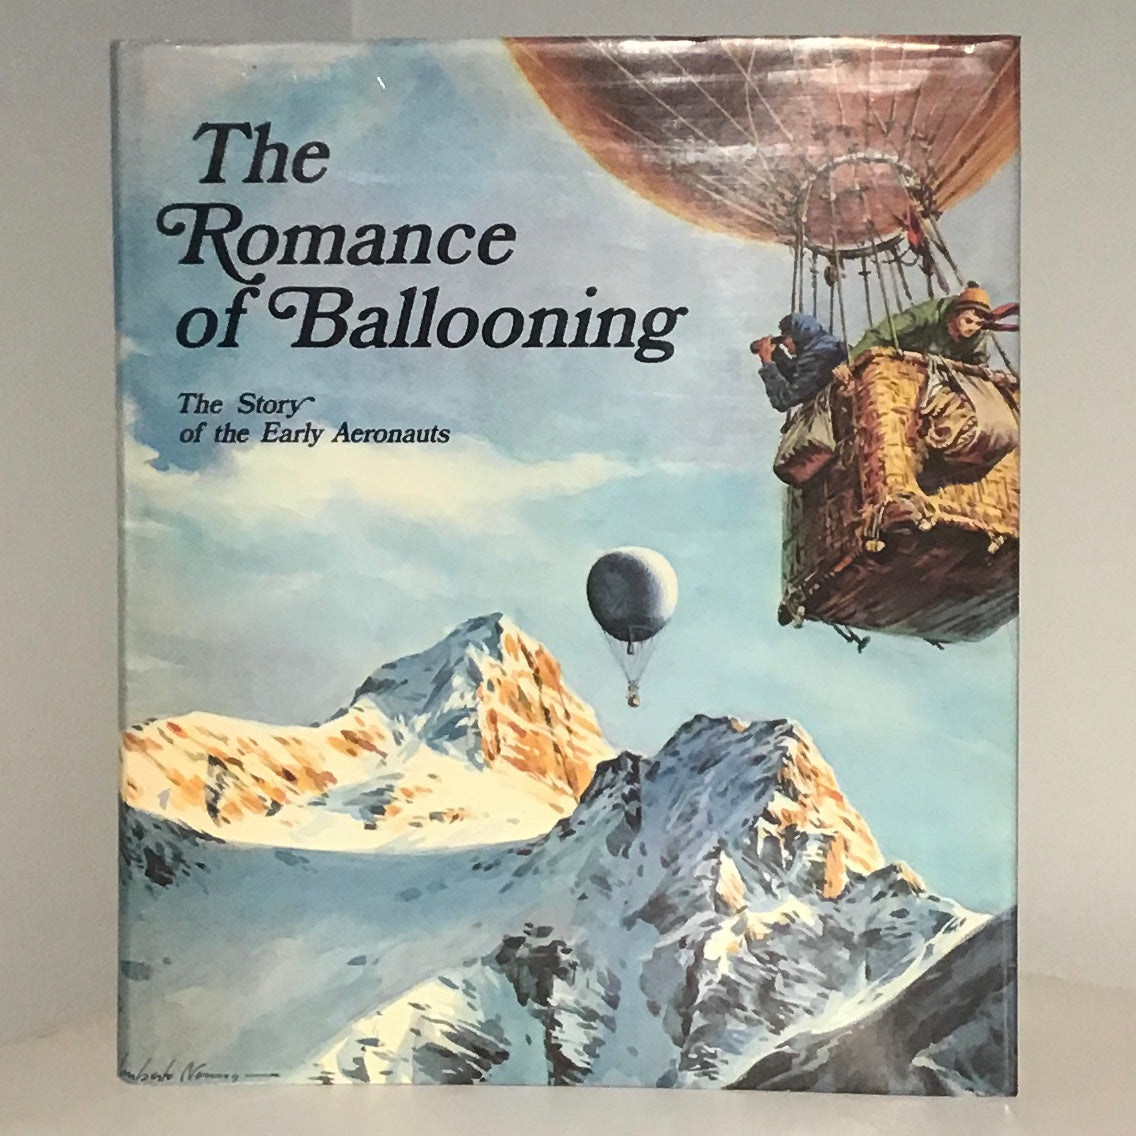 The Romance of Ballooning: The Story of the Early Aeronauts